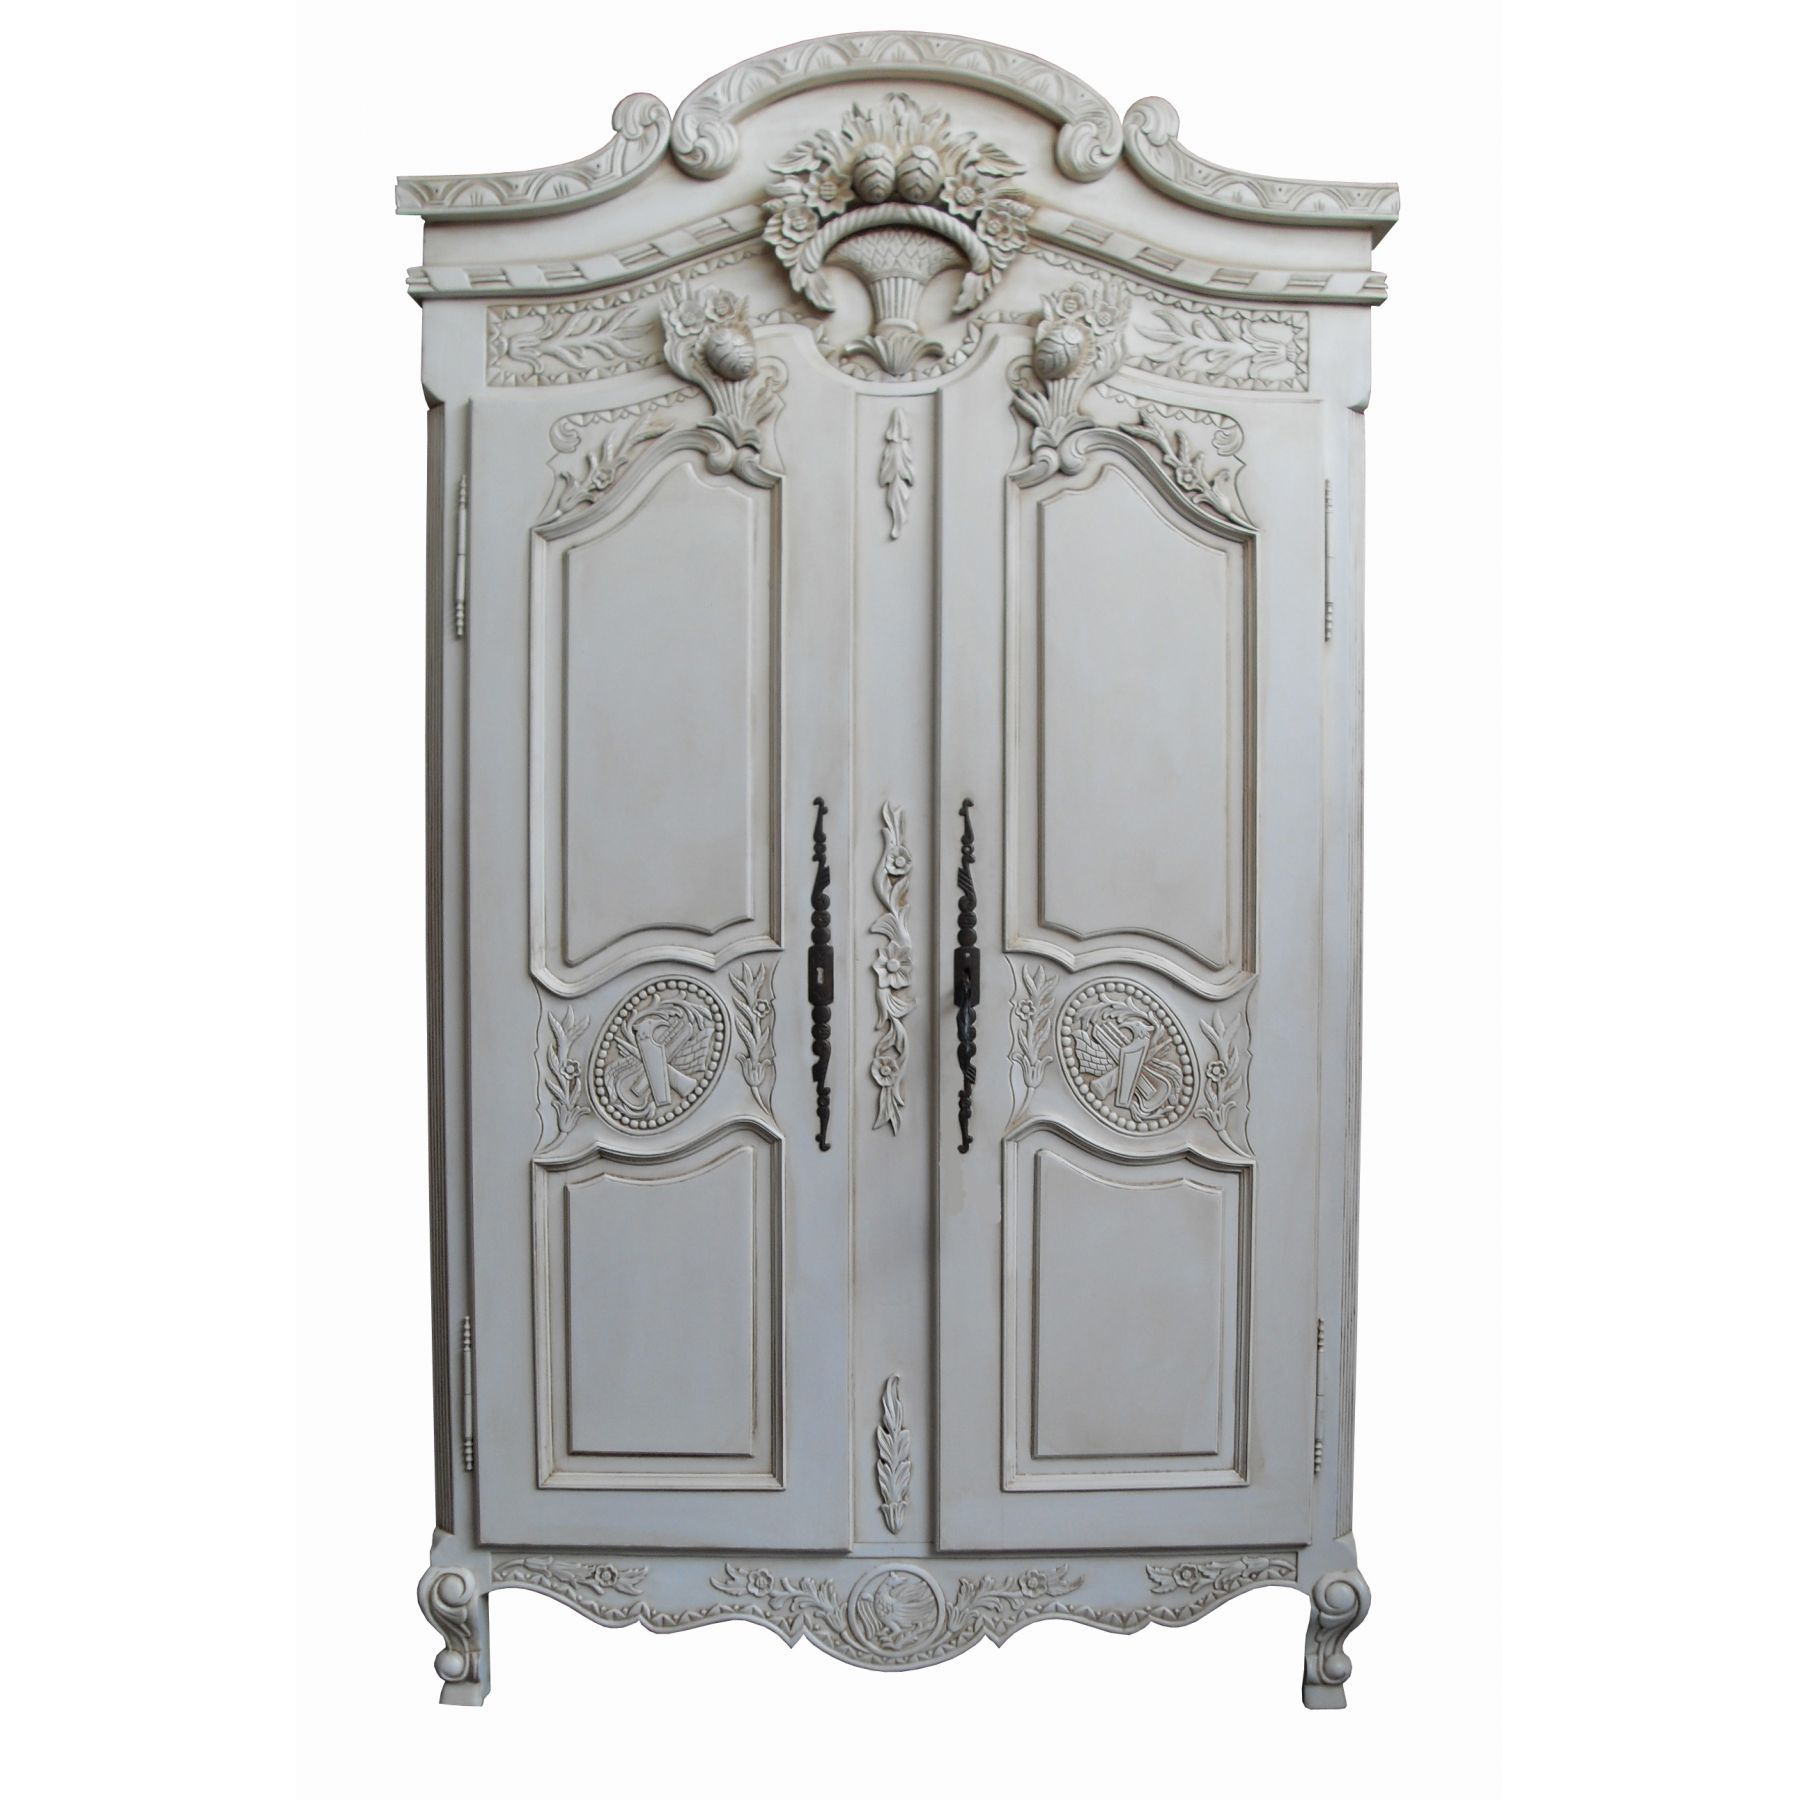 Bedroom Armoire Ikea French Bedroom Chairs Bedroom Room Interior Design Bedroom Armoires: Armoires And Wardrobes 27 : Armoires And Wardrobes Ideas